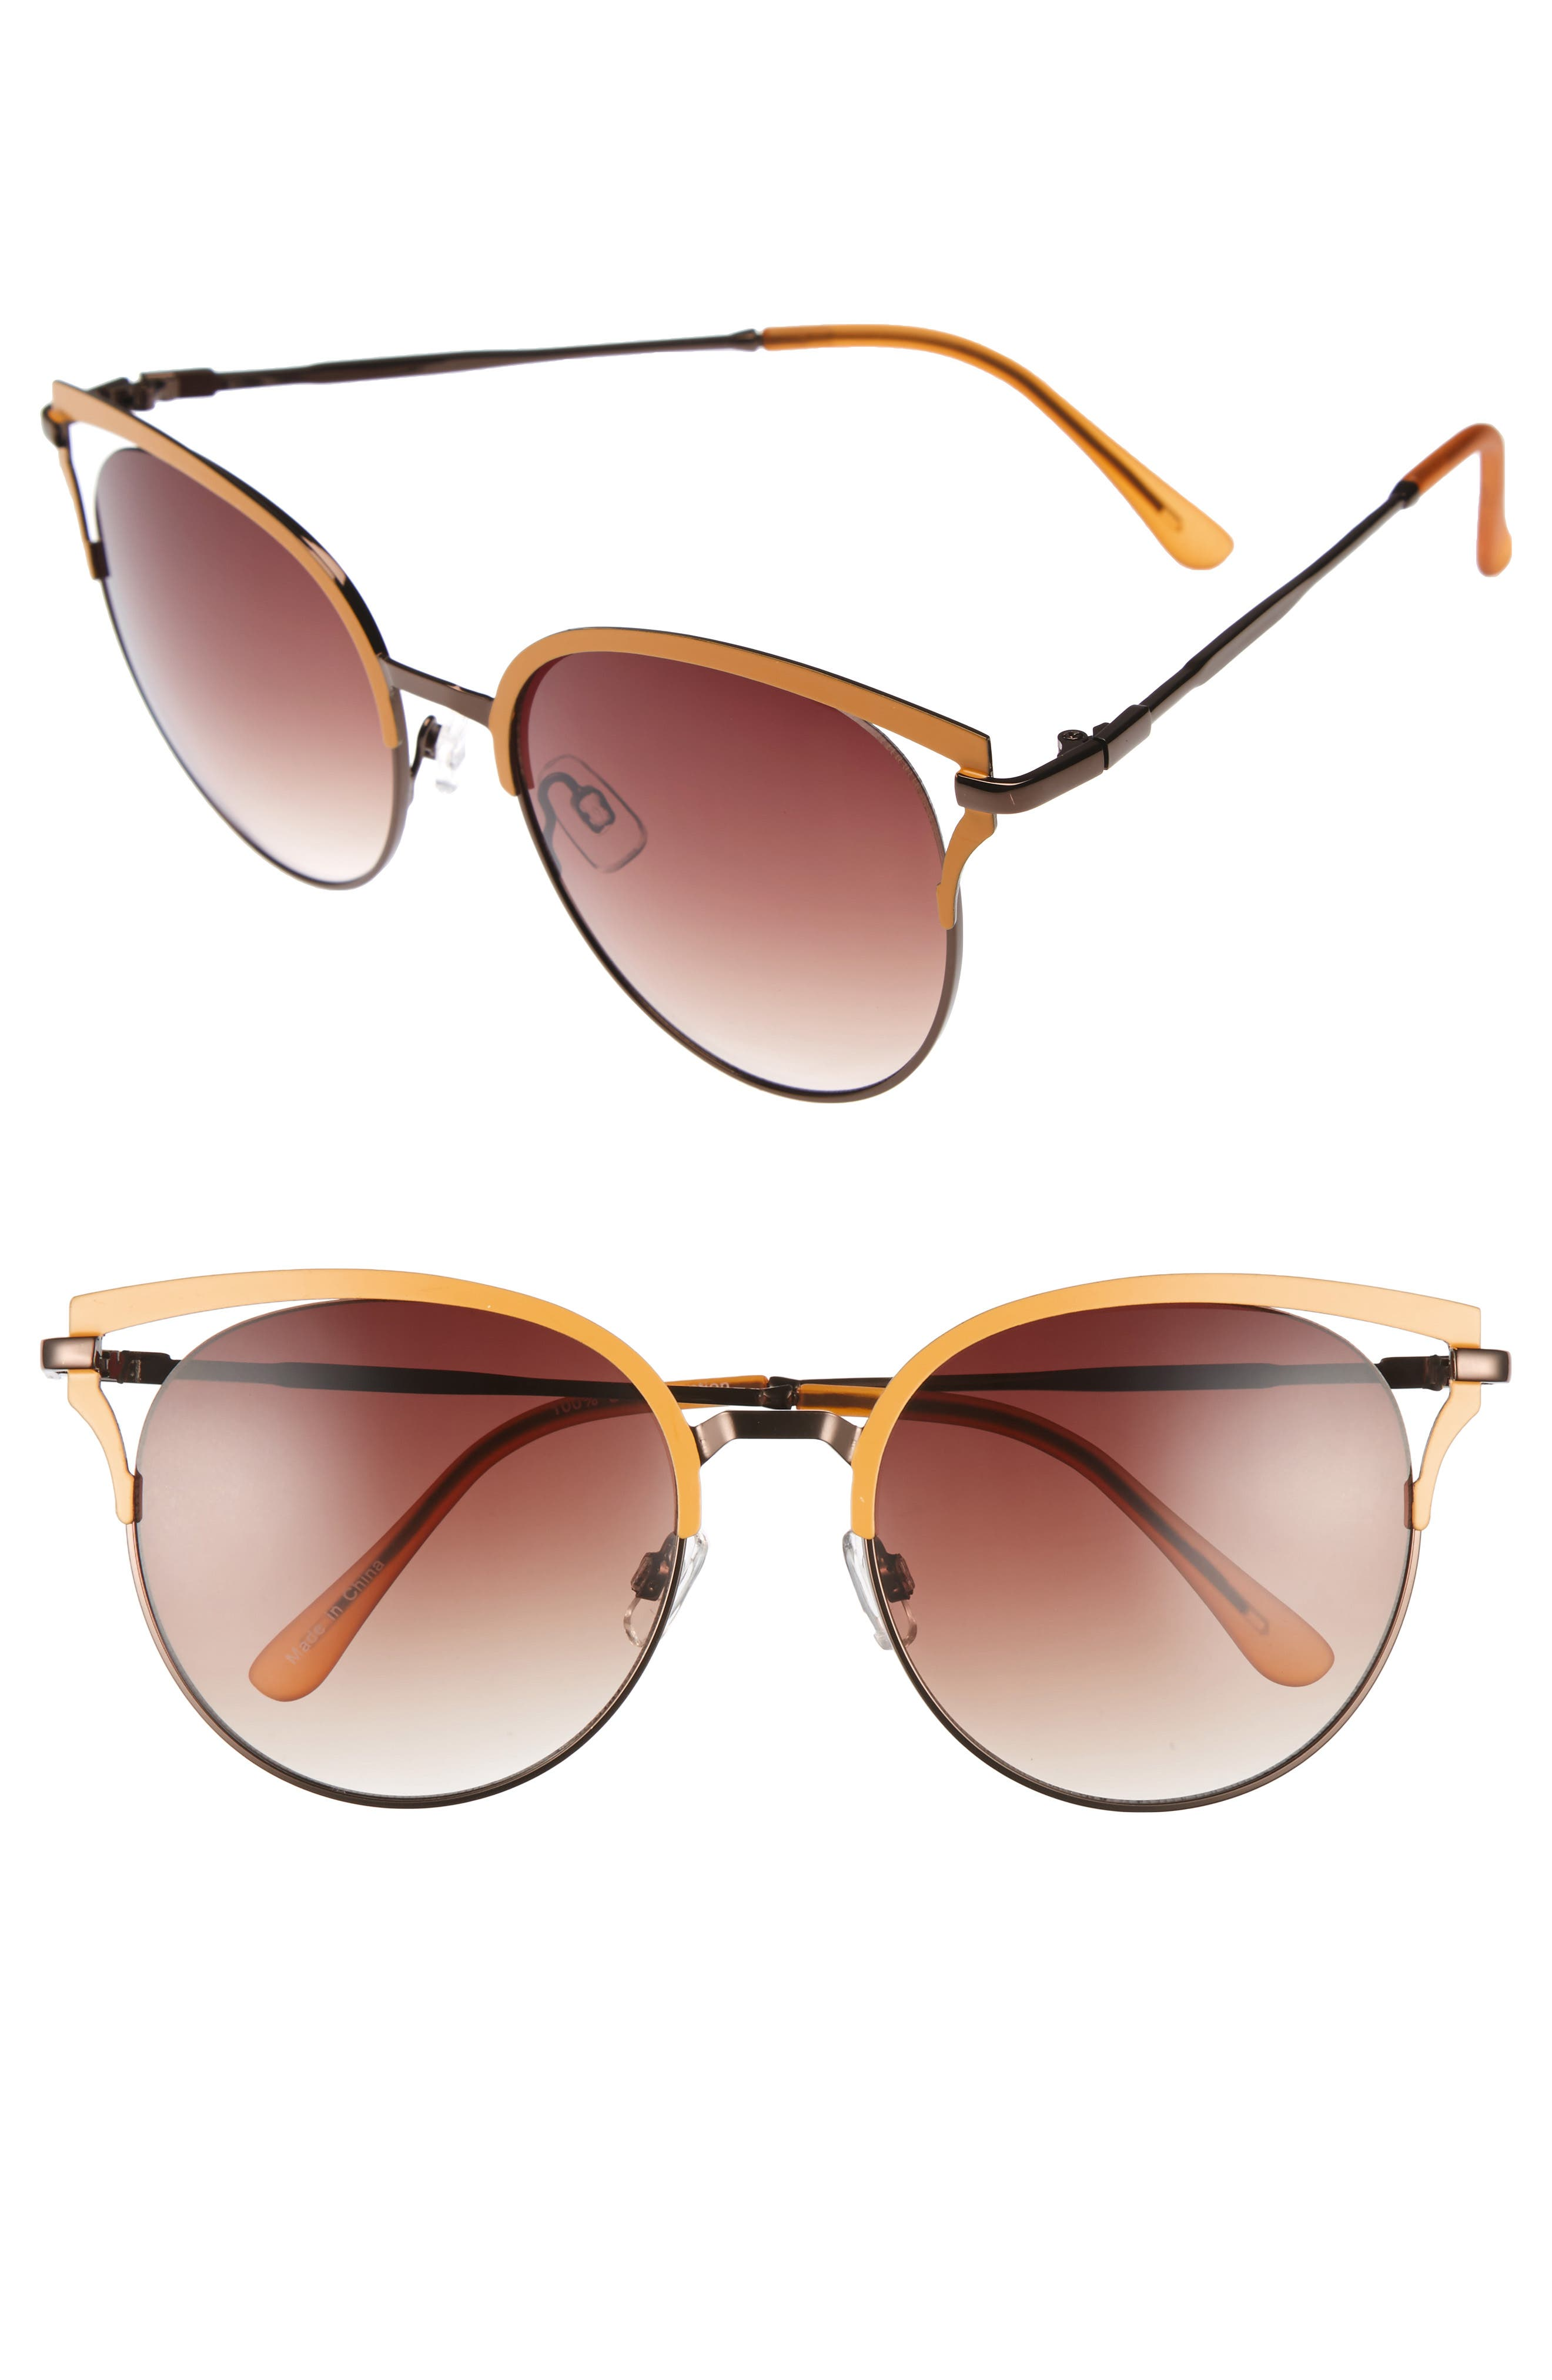 55mm Colored Round Sunglasses,                         Main,                         color, Mustard/ Gold